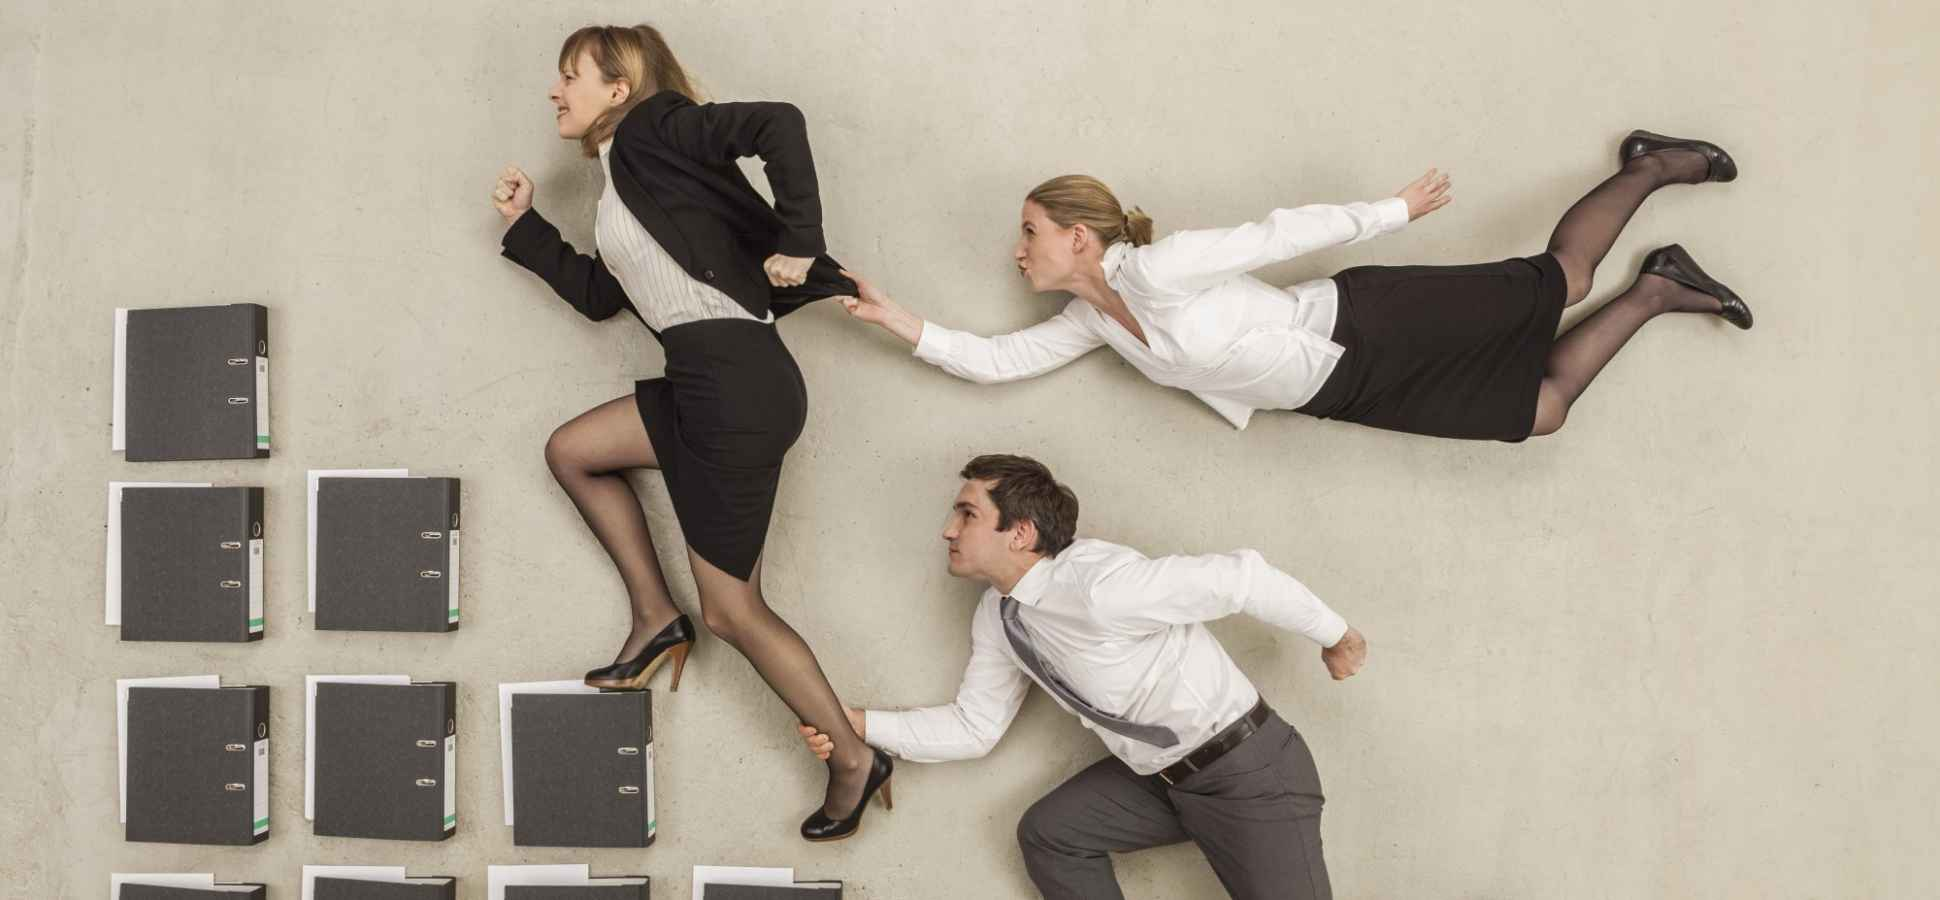 Is Envy Stalling Your Career? How Can You Tell and What Can You Do?